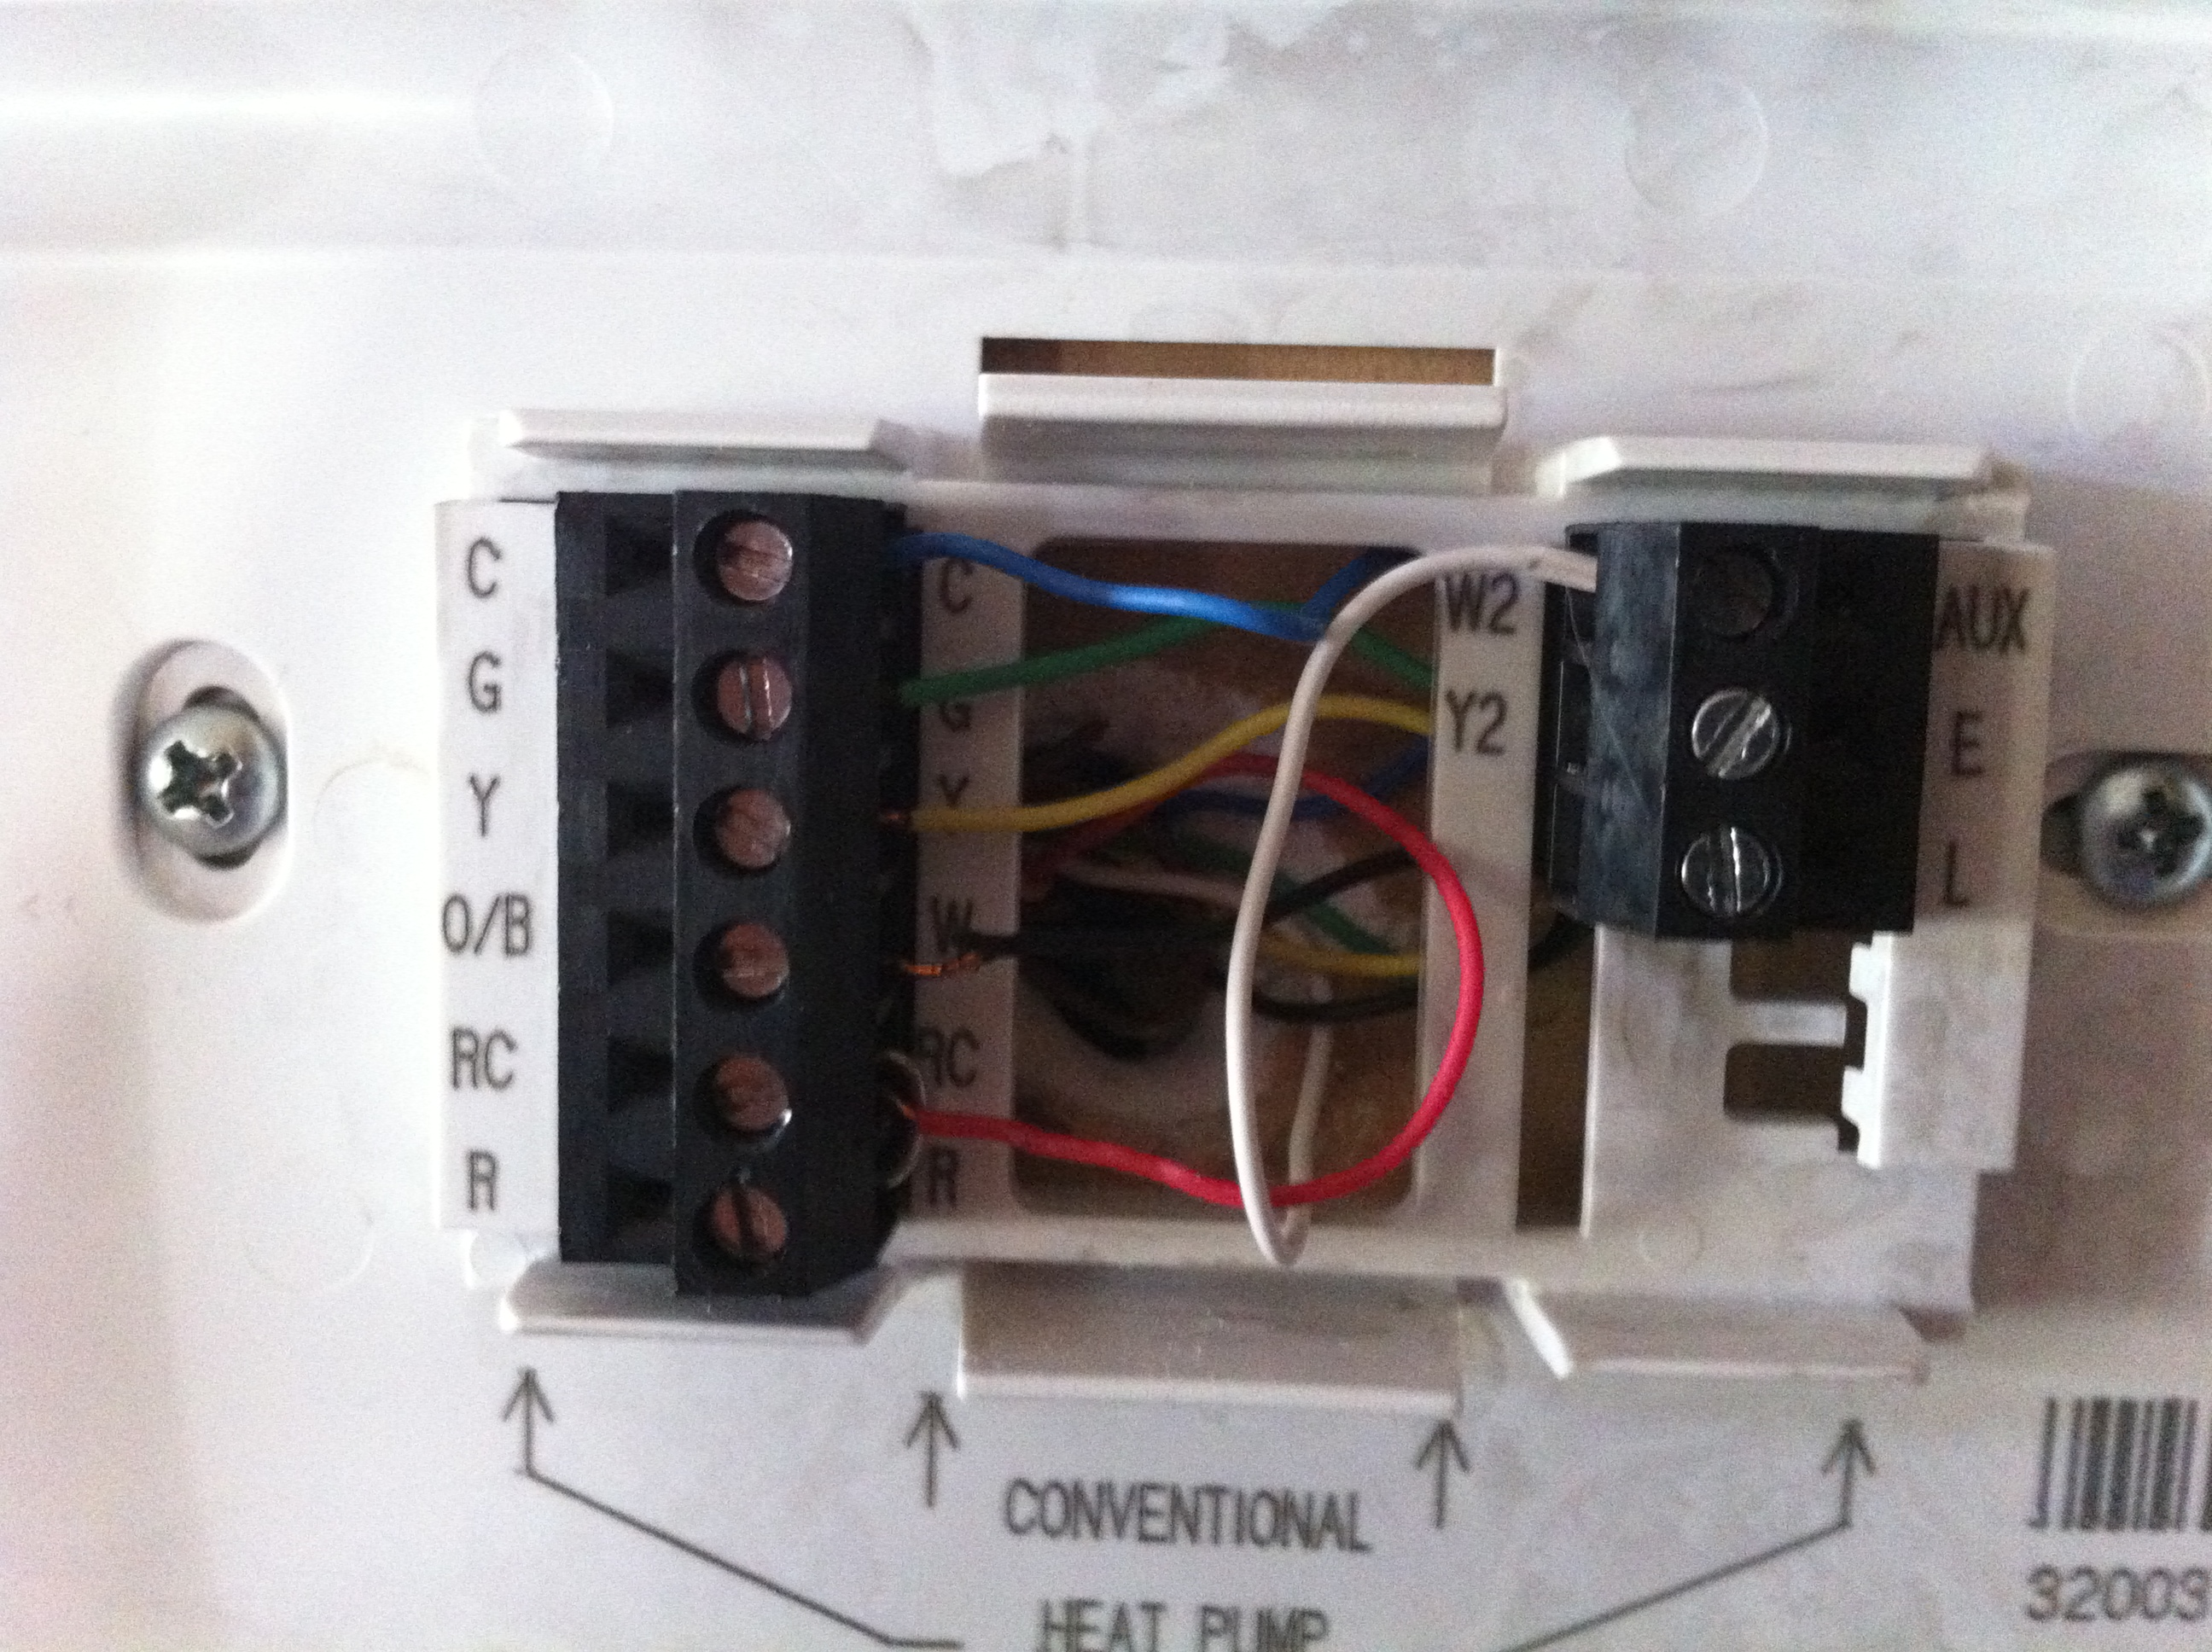 Thermostat Wiring Diagrams Honeywell Thermostat Wiring Diagrams Heat